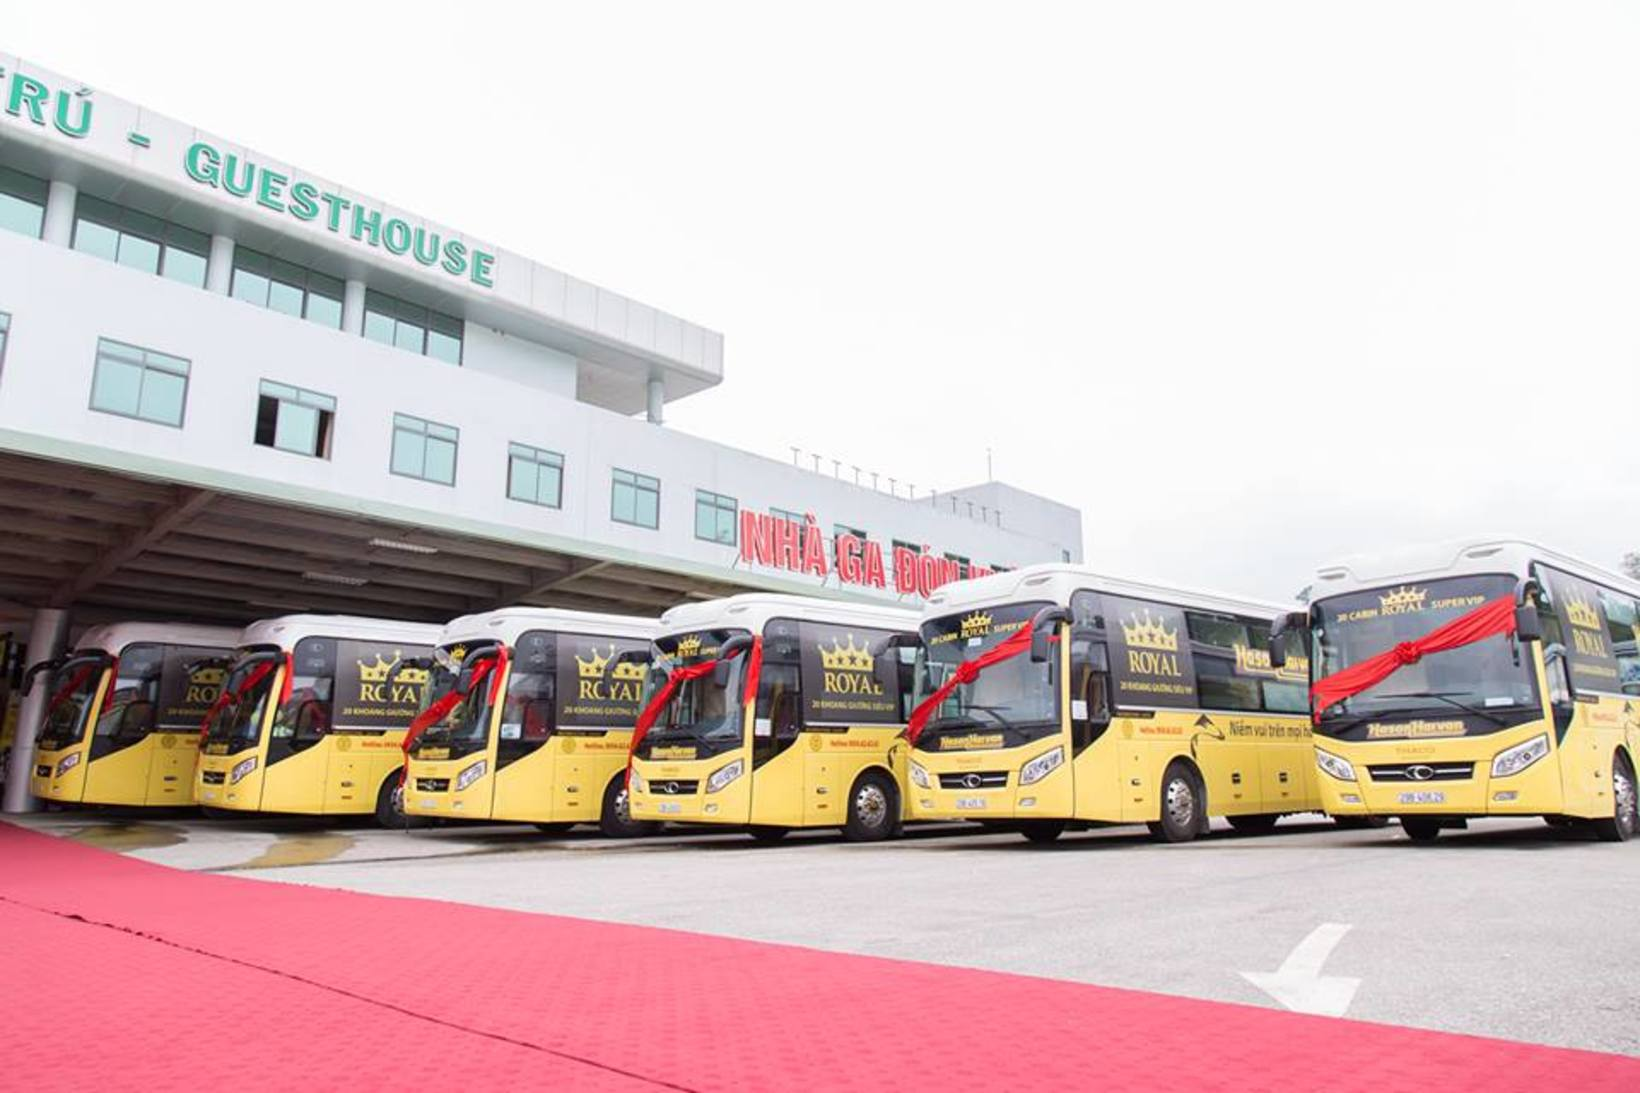 Vietnam Transportation: How to Use the Open Bus Ticket in Vietnam 2019 - 2020